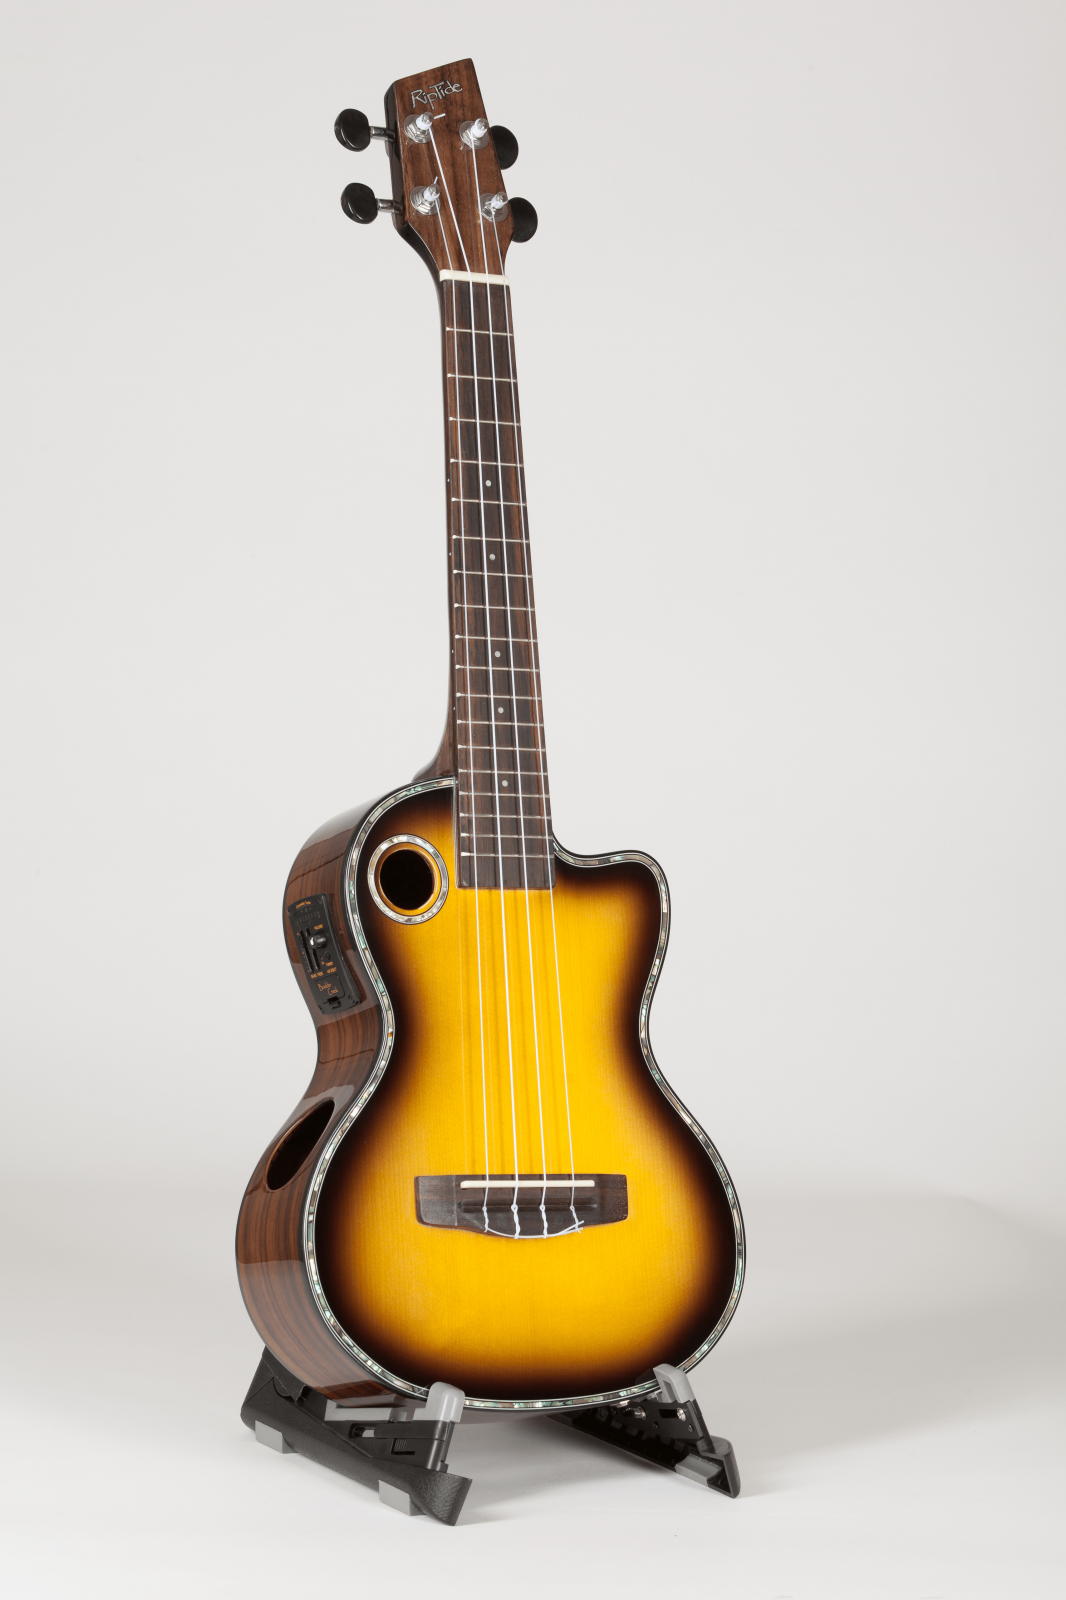 Boulder Creek Tenor Cutaway Riptide Ukulele Model ECUT-2CS